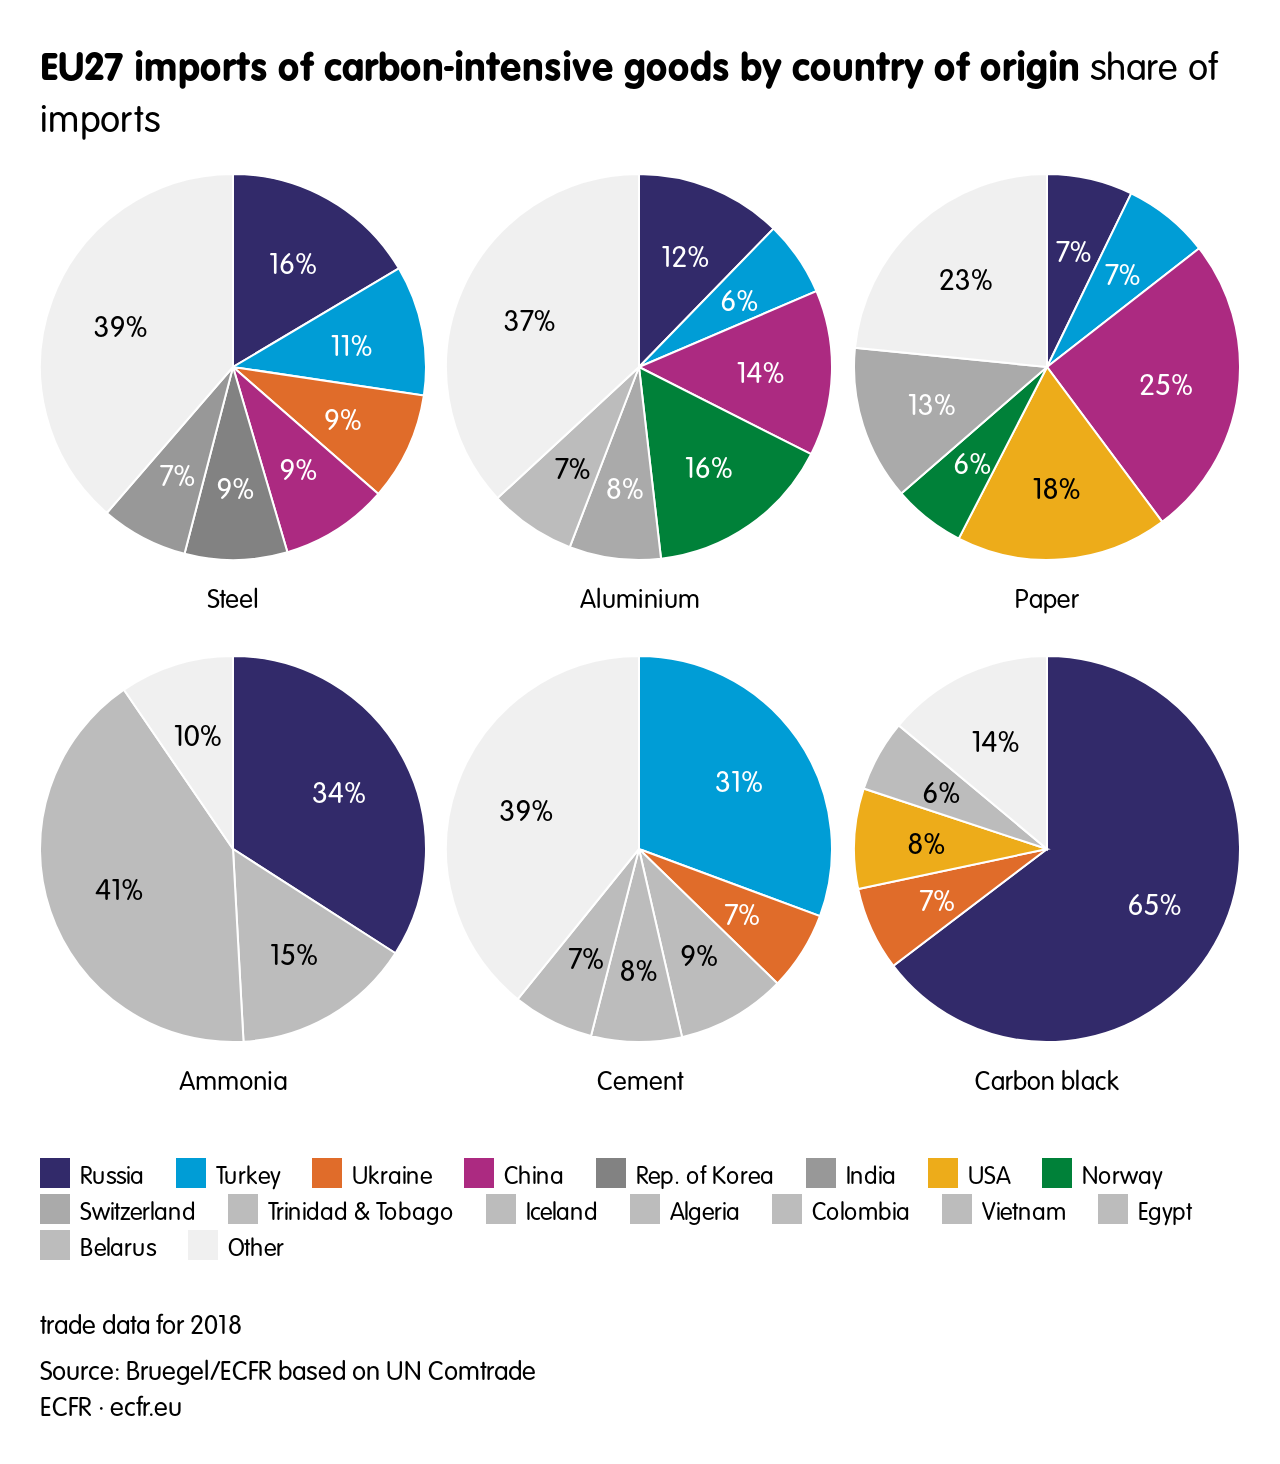 EU27 imports of carbon-intensive goods by country of origin